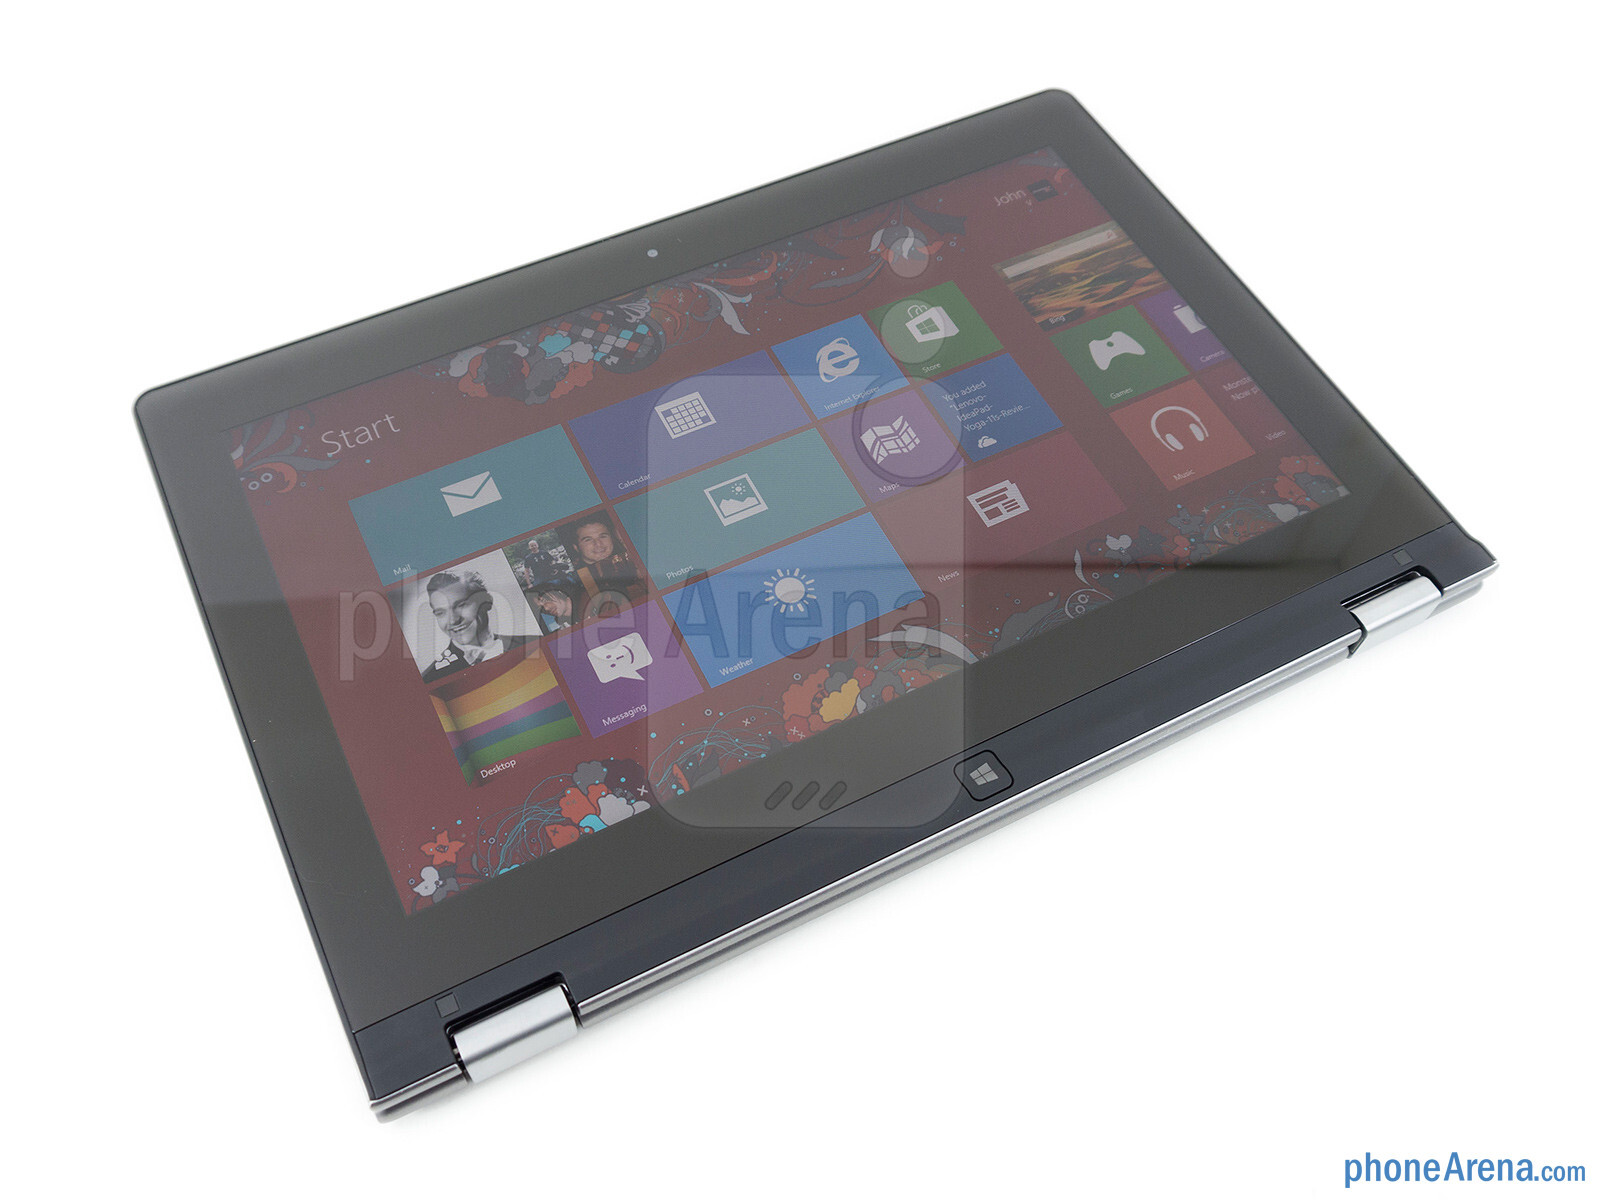 The lenovo ideapad yoga 11 s interesting design is complemented by